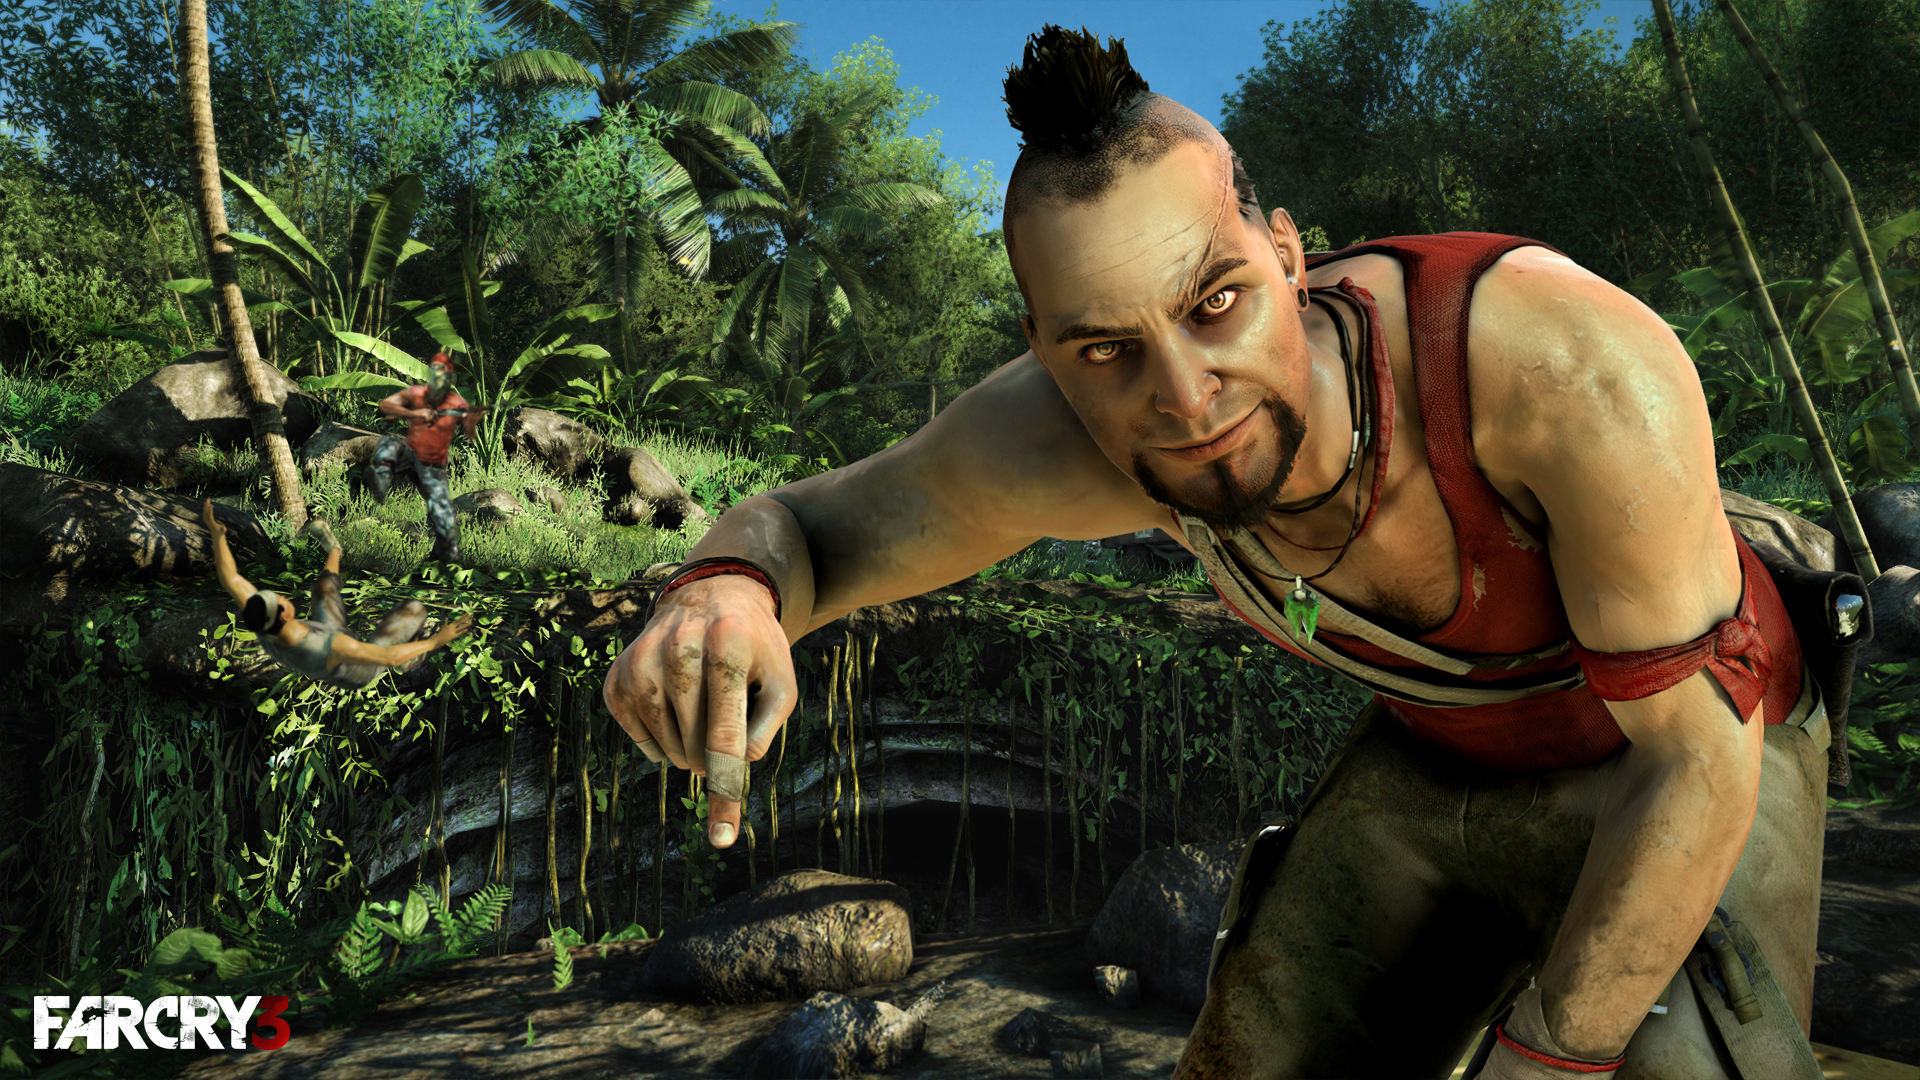 Far Cry 3 Review: The Definition of A Good Time